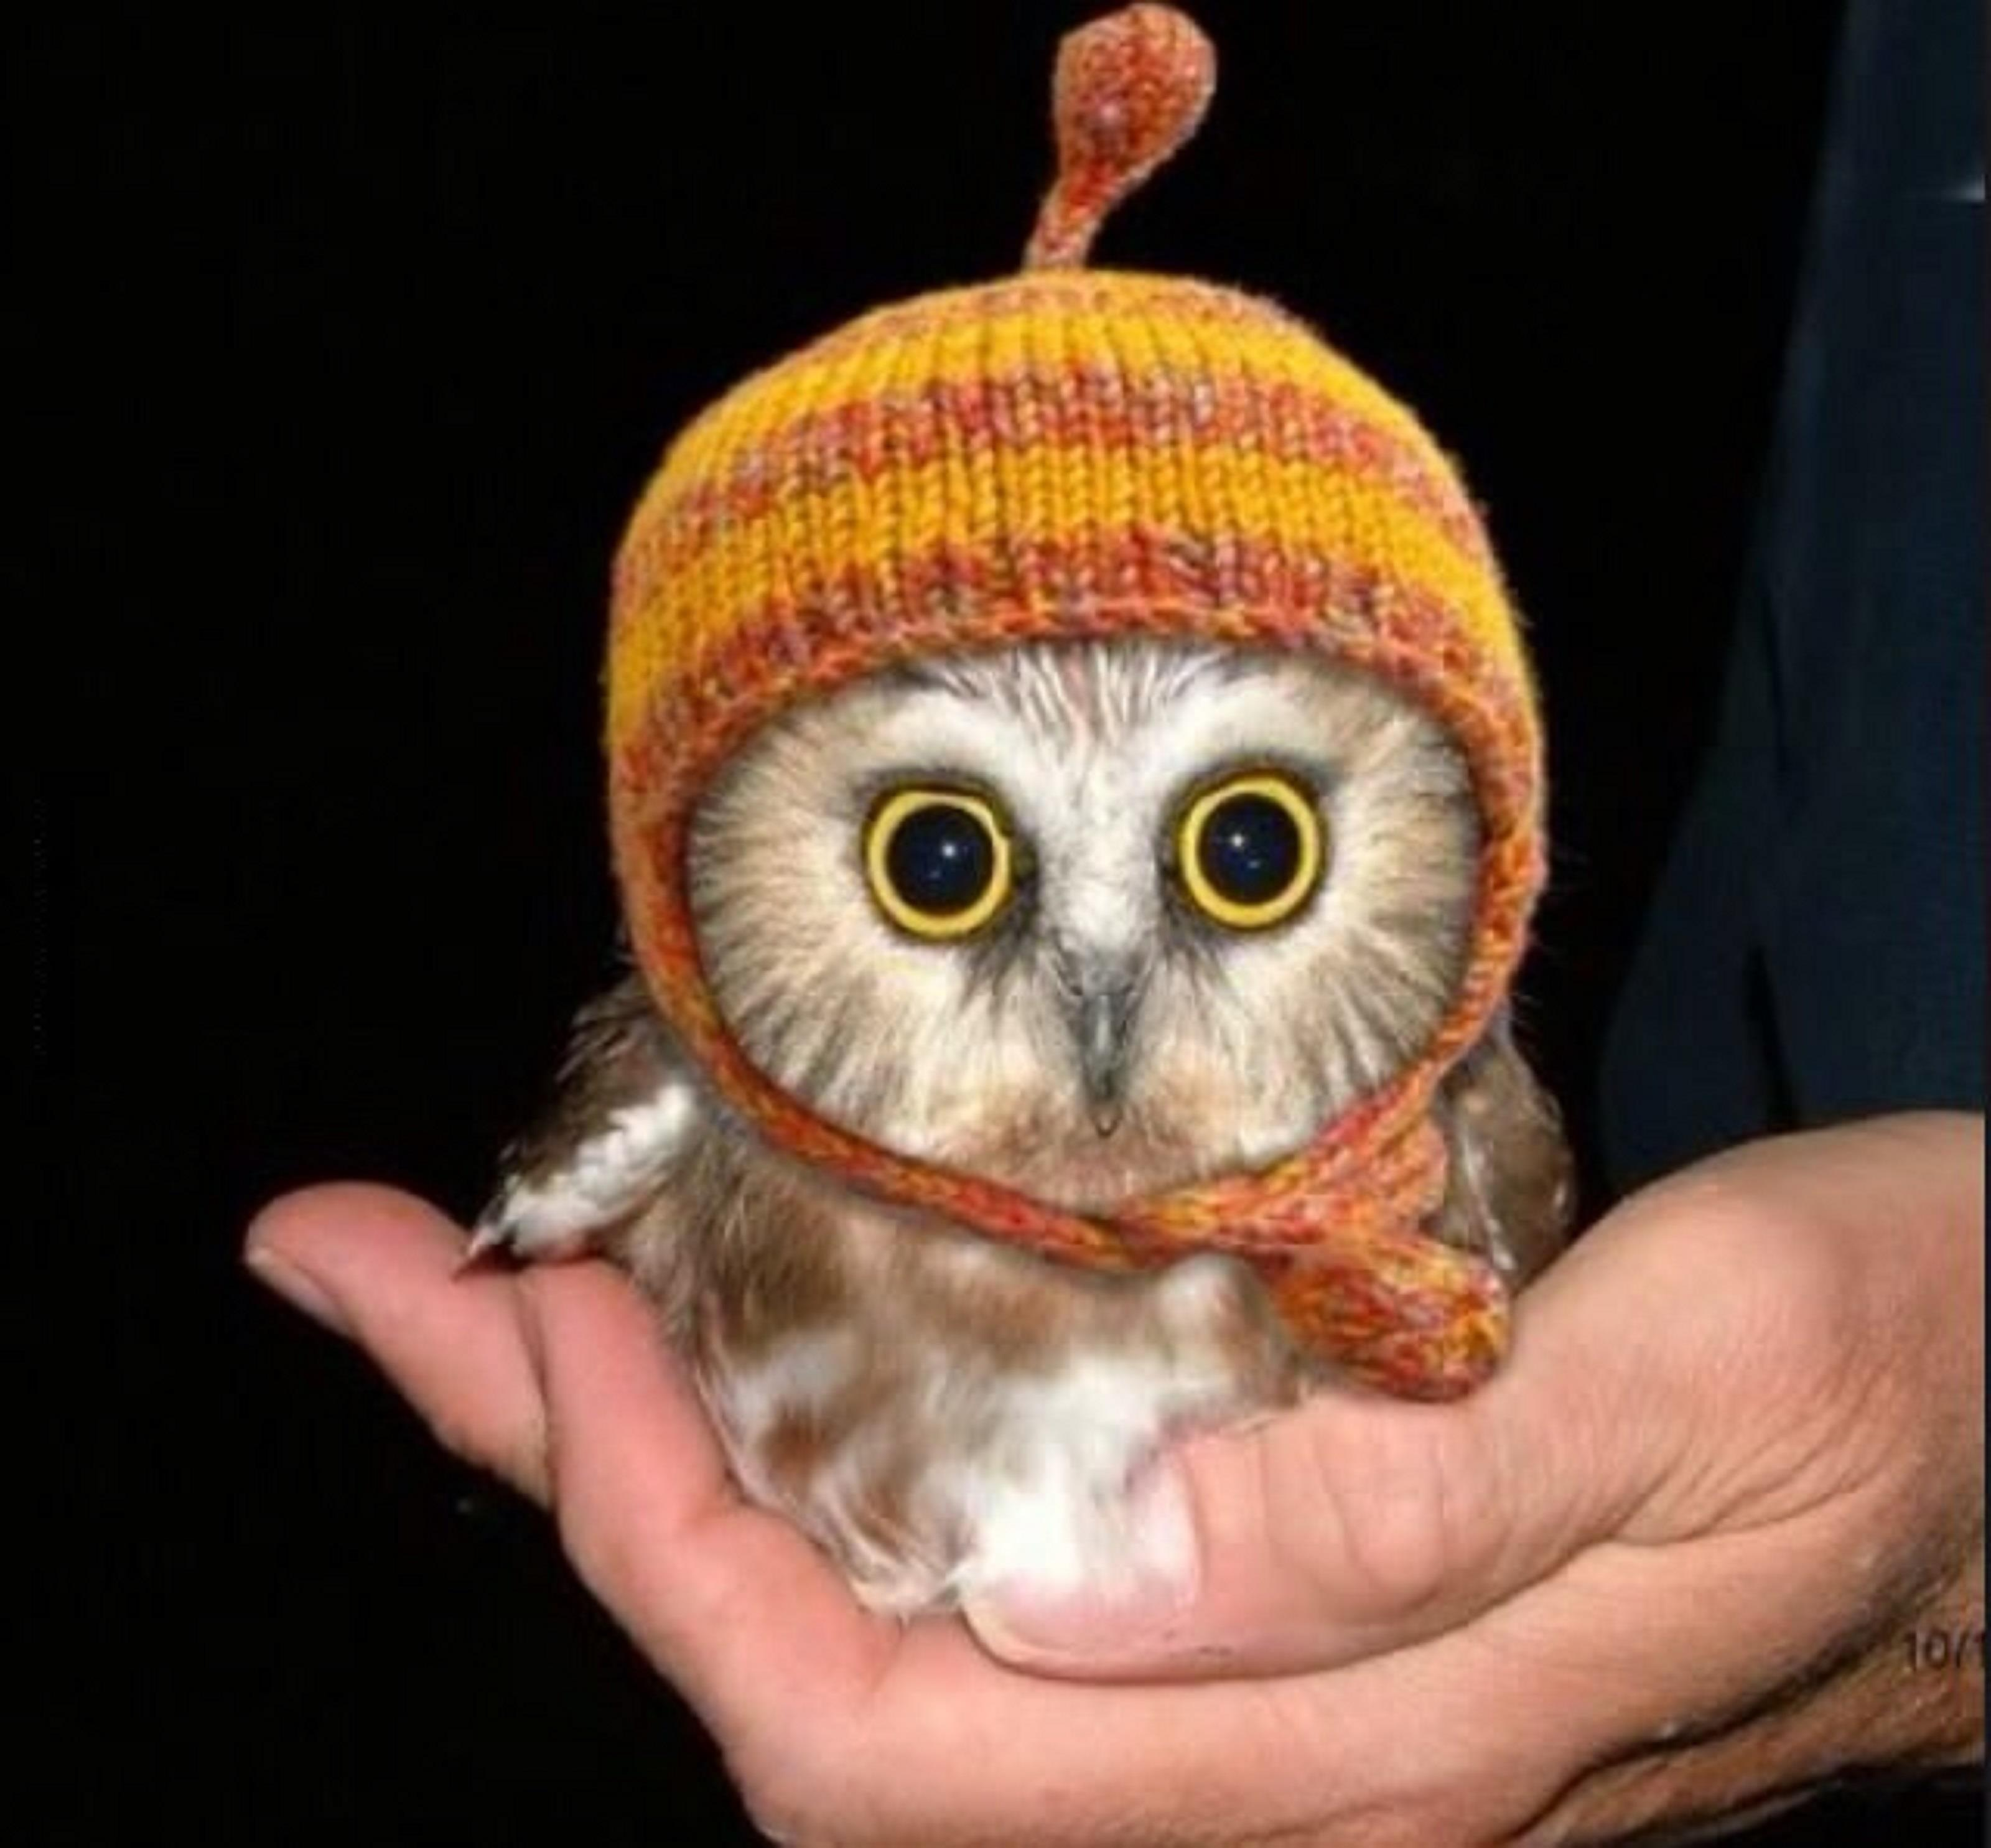 Baby Owl Cuteness Overload